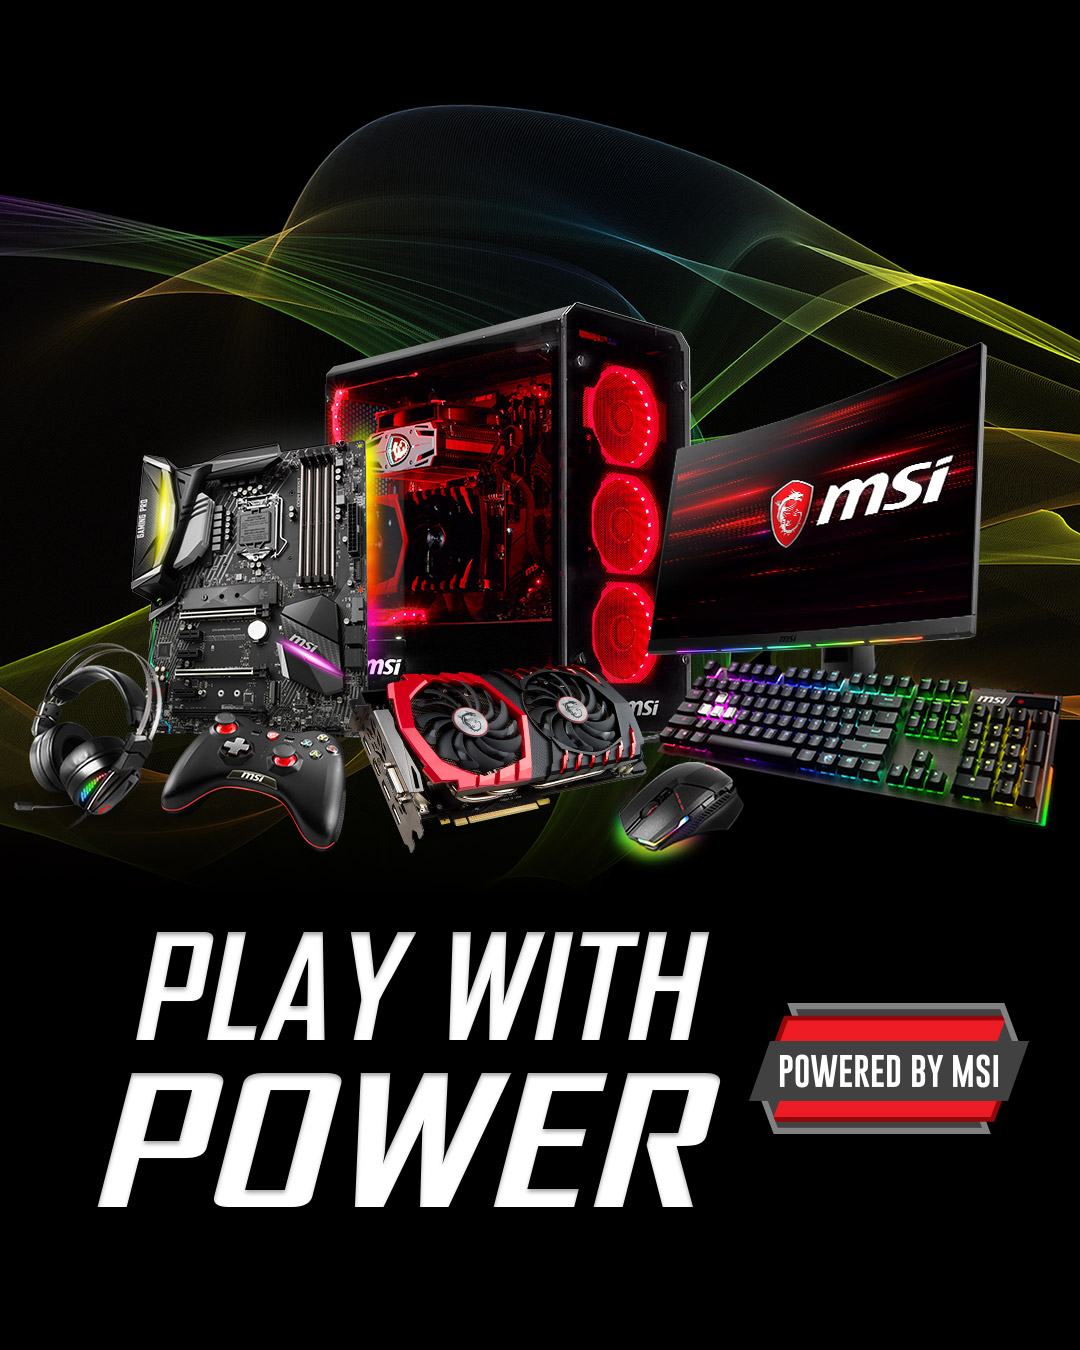 Powered by MSI 2019